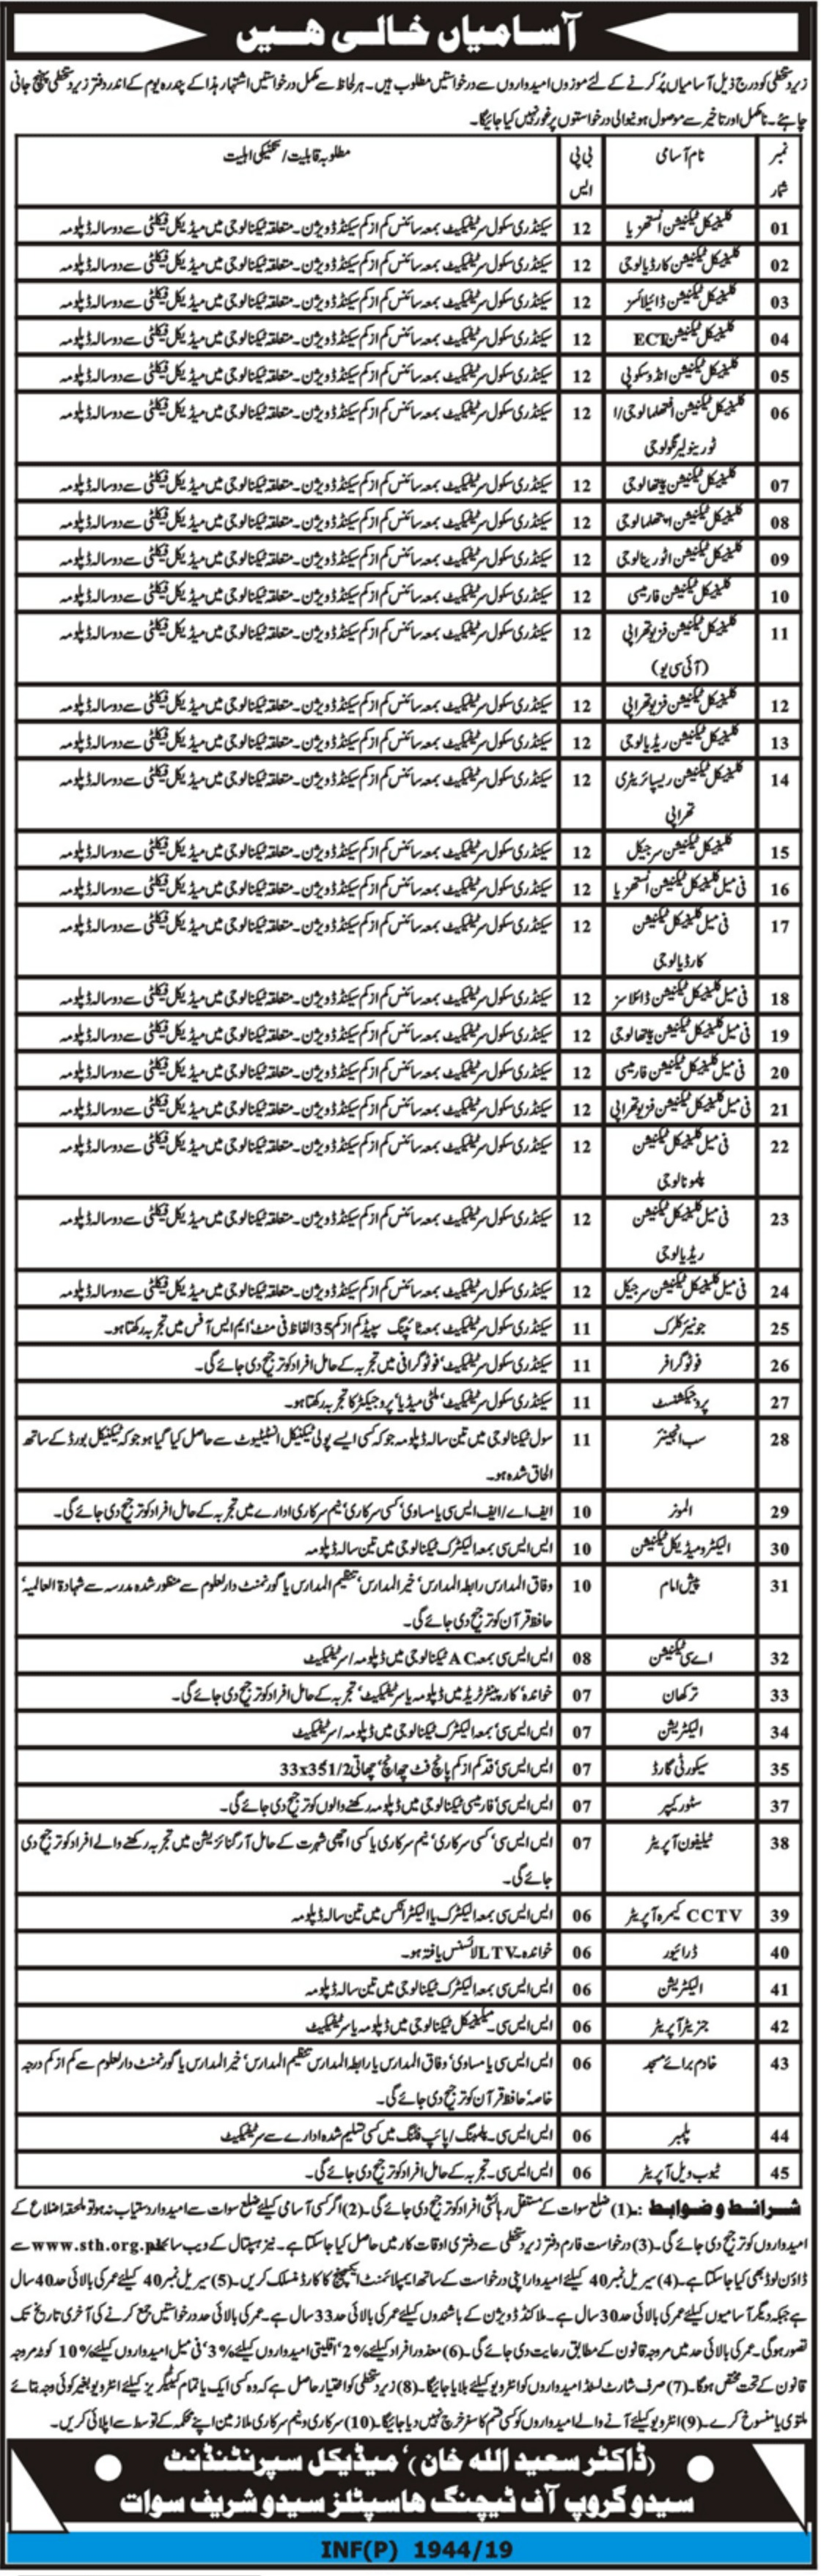 Saidu Group of Teaching Hospitals Swat Jobs 2019 KPK